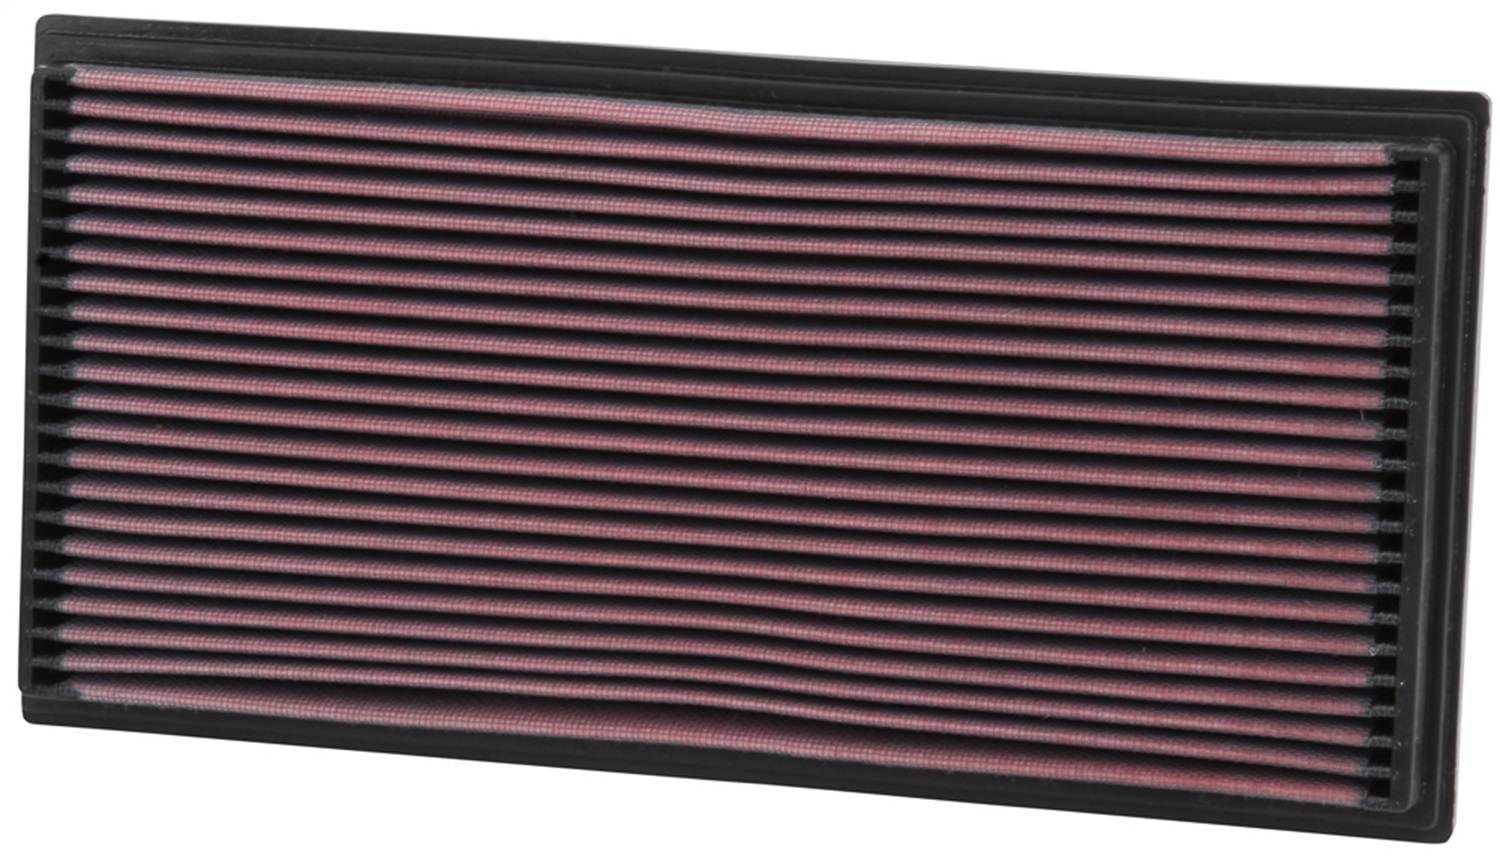 K&N Filters 33-2763 Air Filter Fits 00-04 S40 V40 33-2763